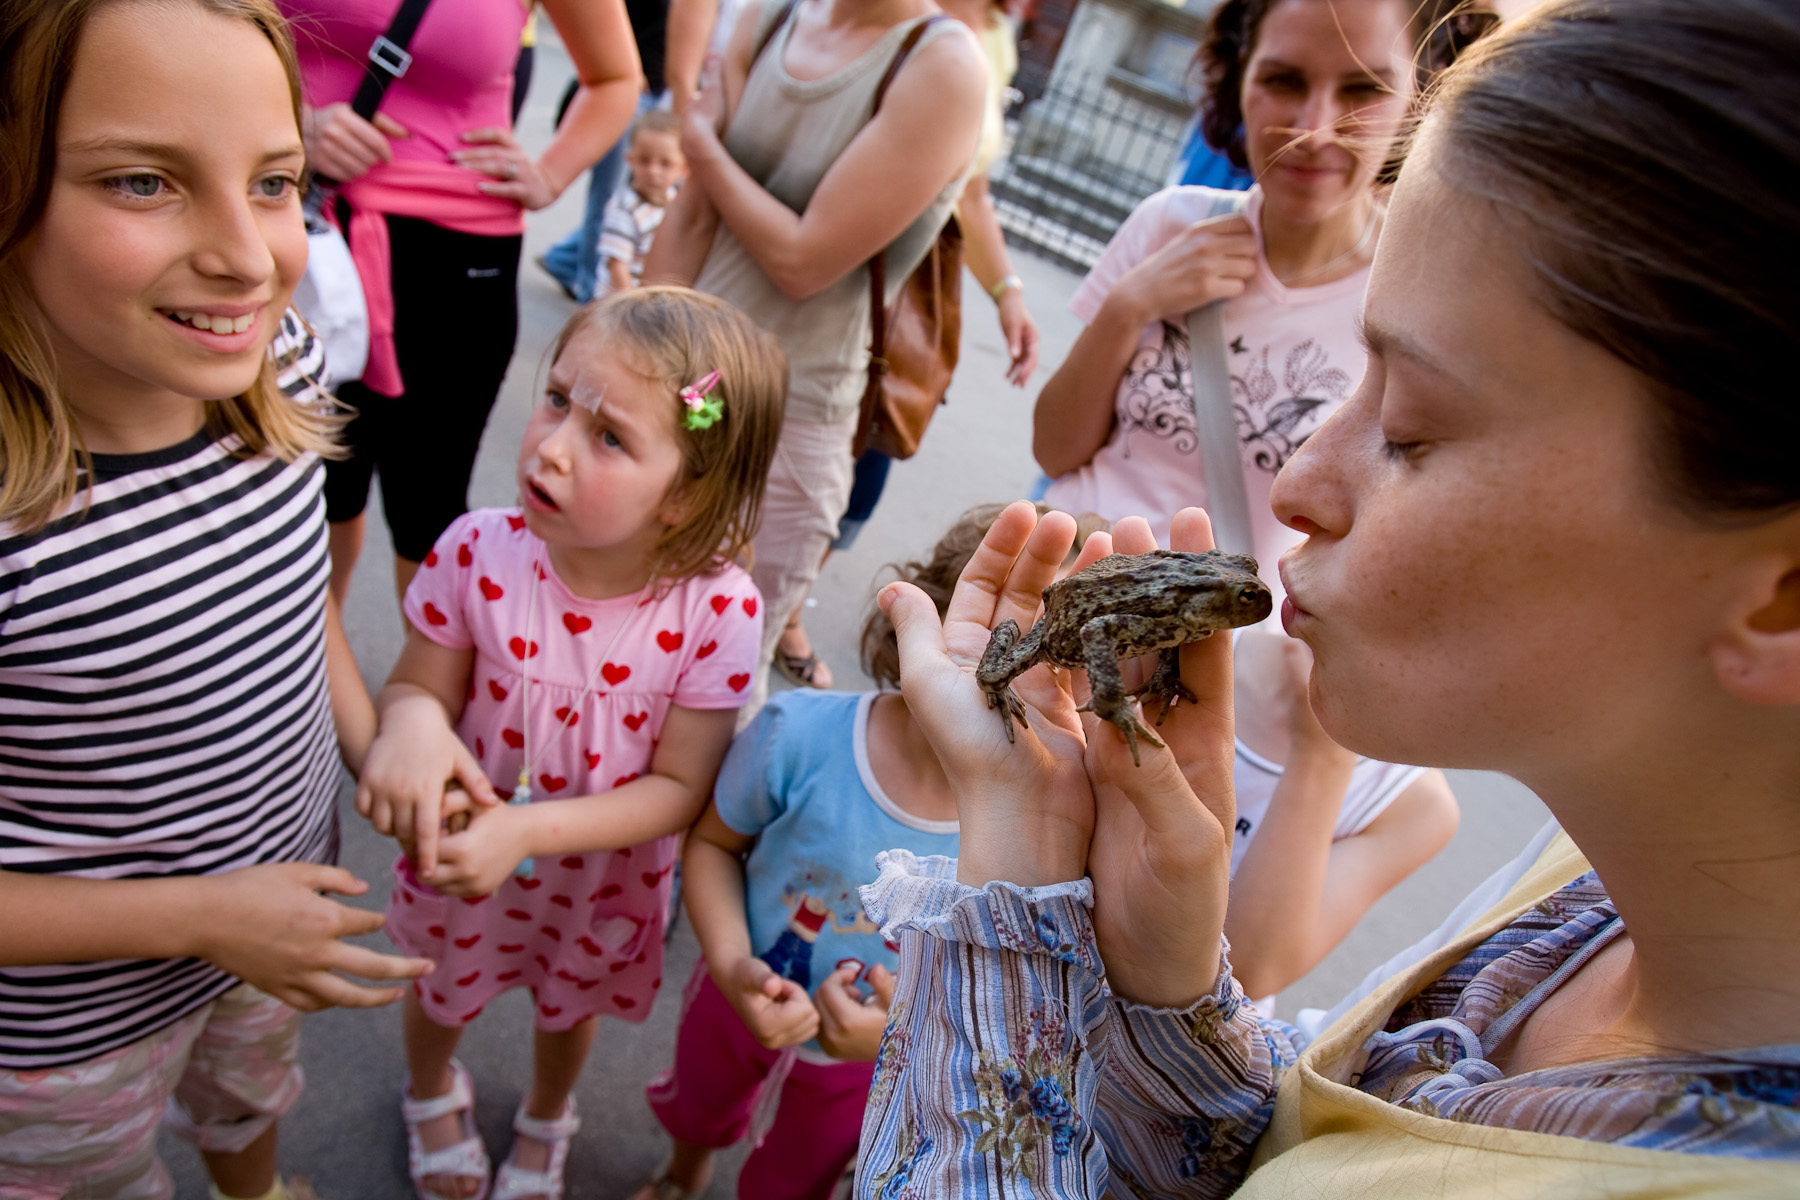 A street performer kisses a frog in Skofja Loka, Slovenia, on June 21, 2008. Frogs and snakes are a common part of buffoon performances and attract crowds of people.